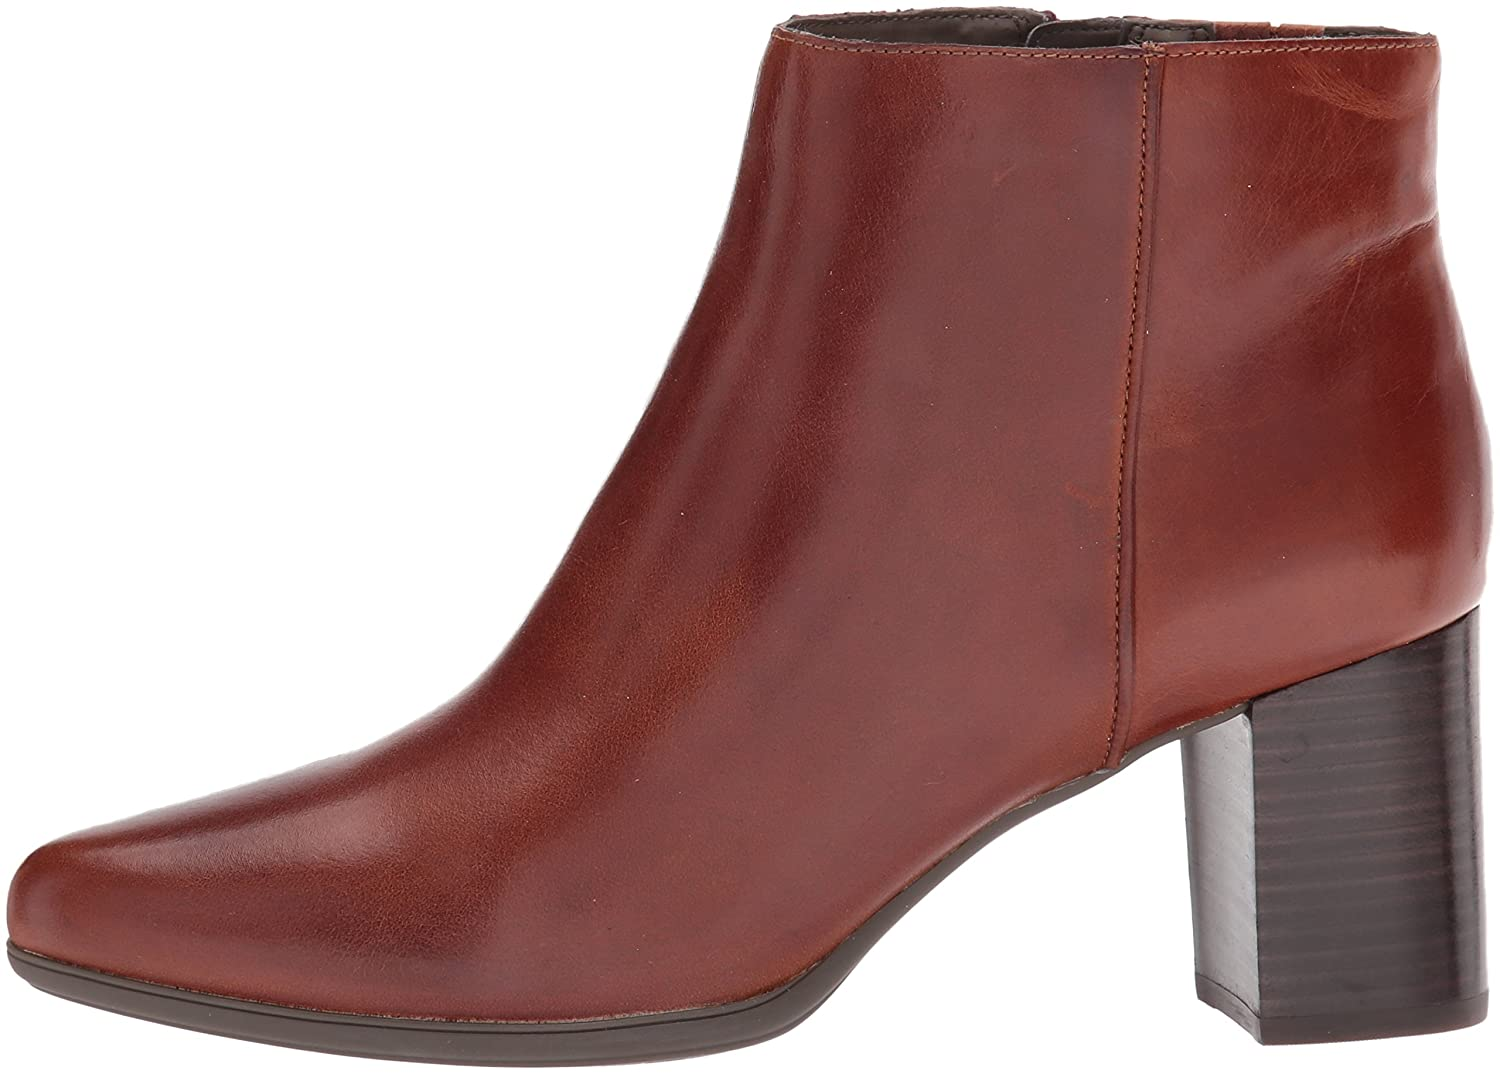 Rockport Women's Total Motion Lynix Bootie Boot B0725R1648 9 B(M) US|Saddle